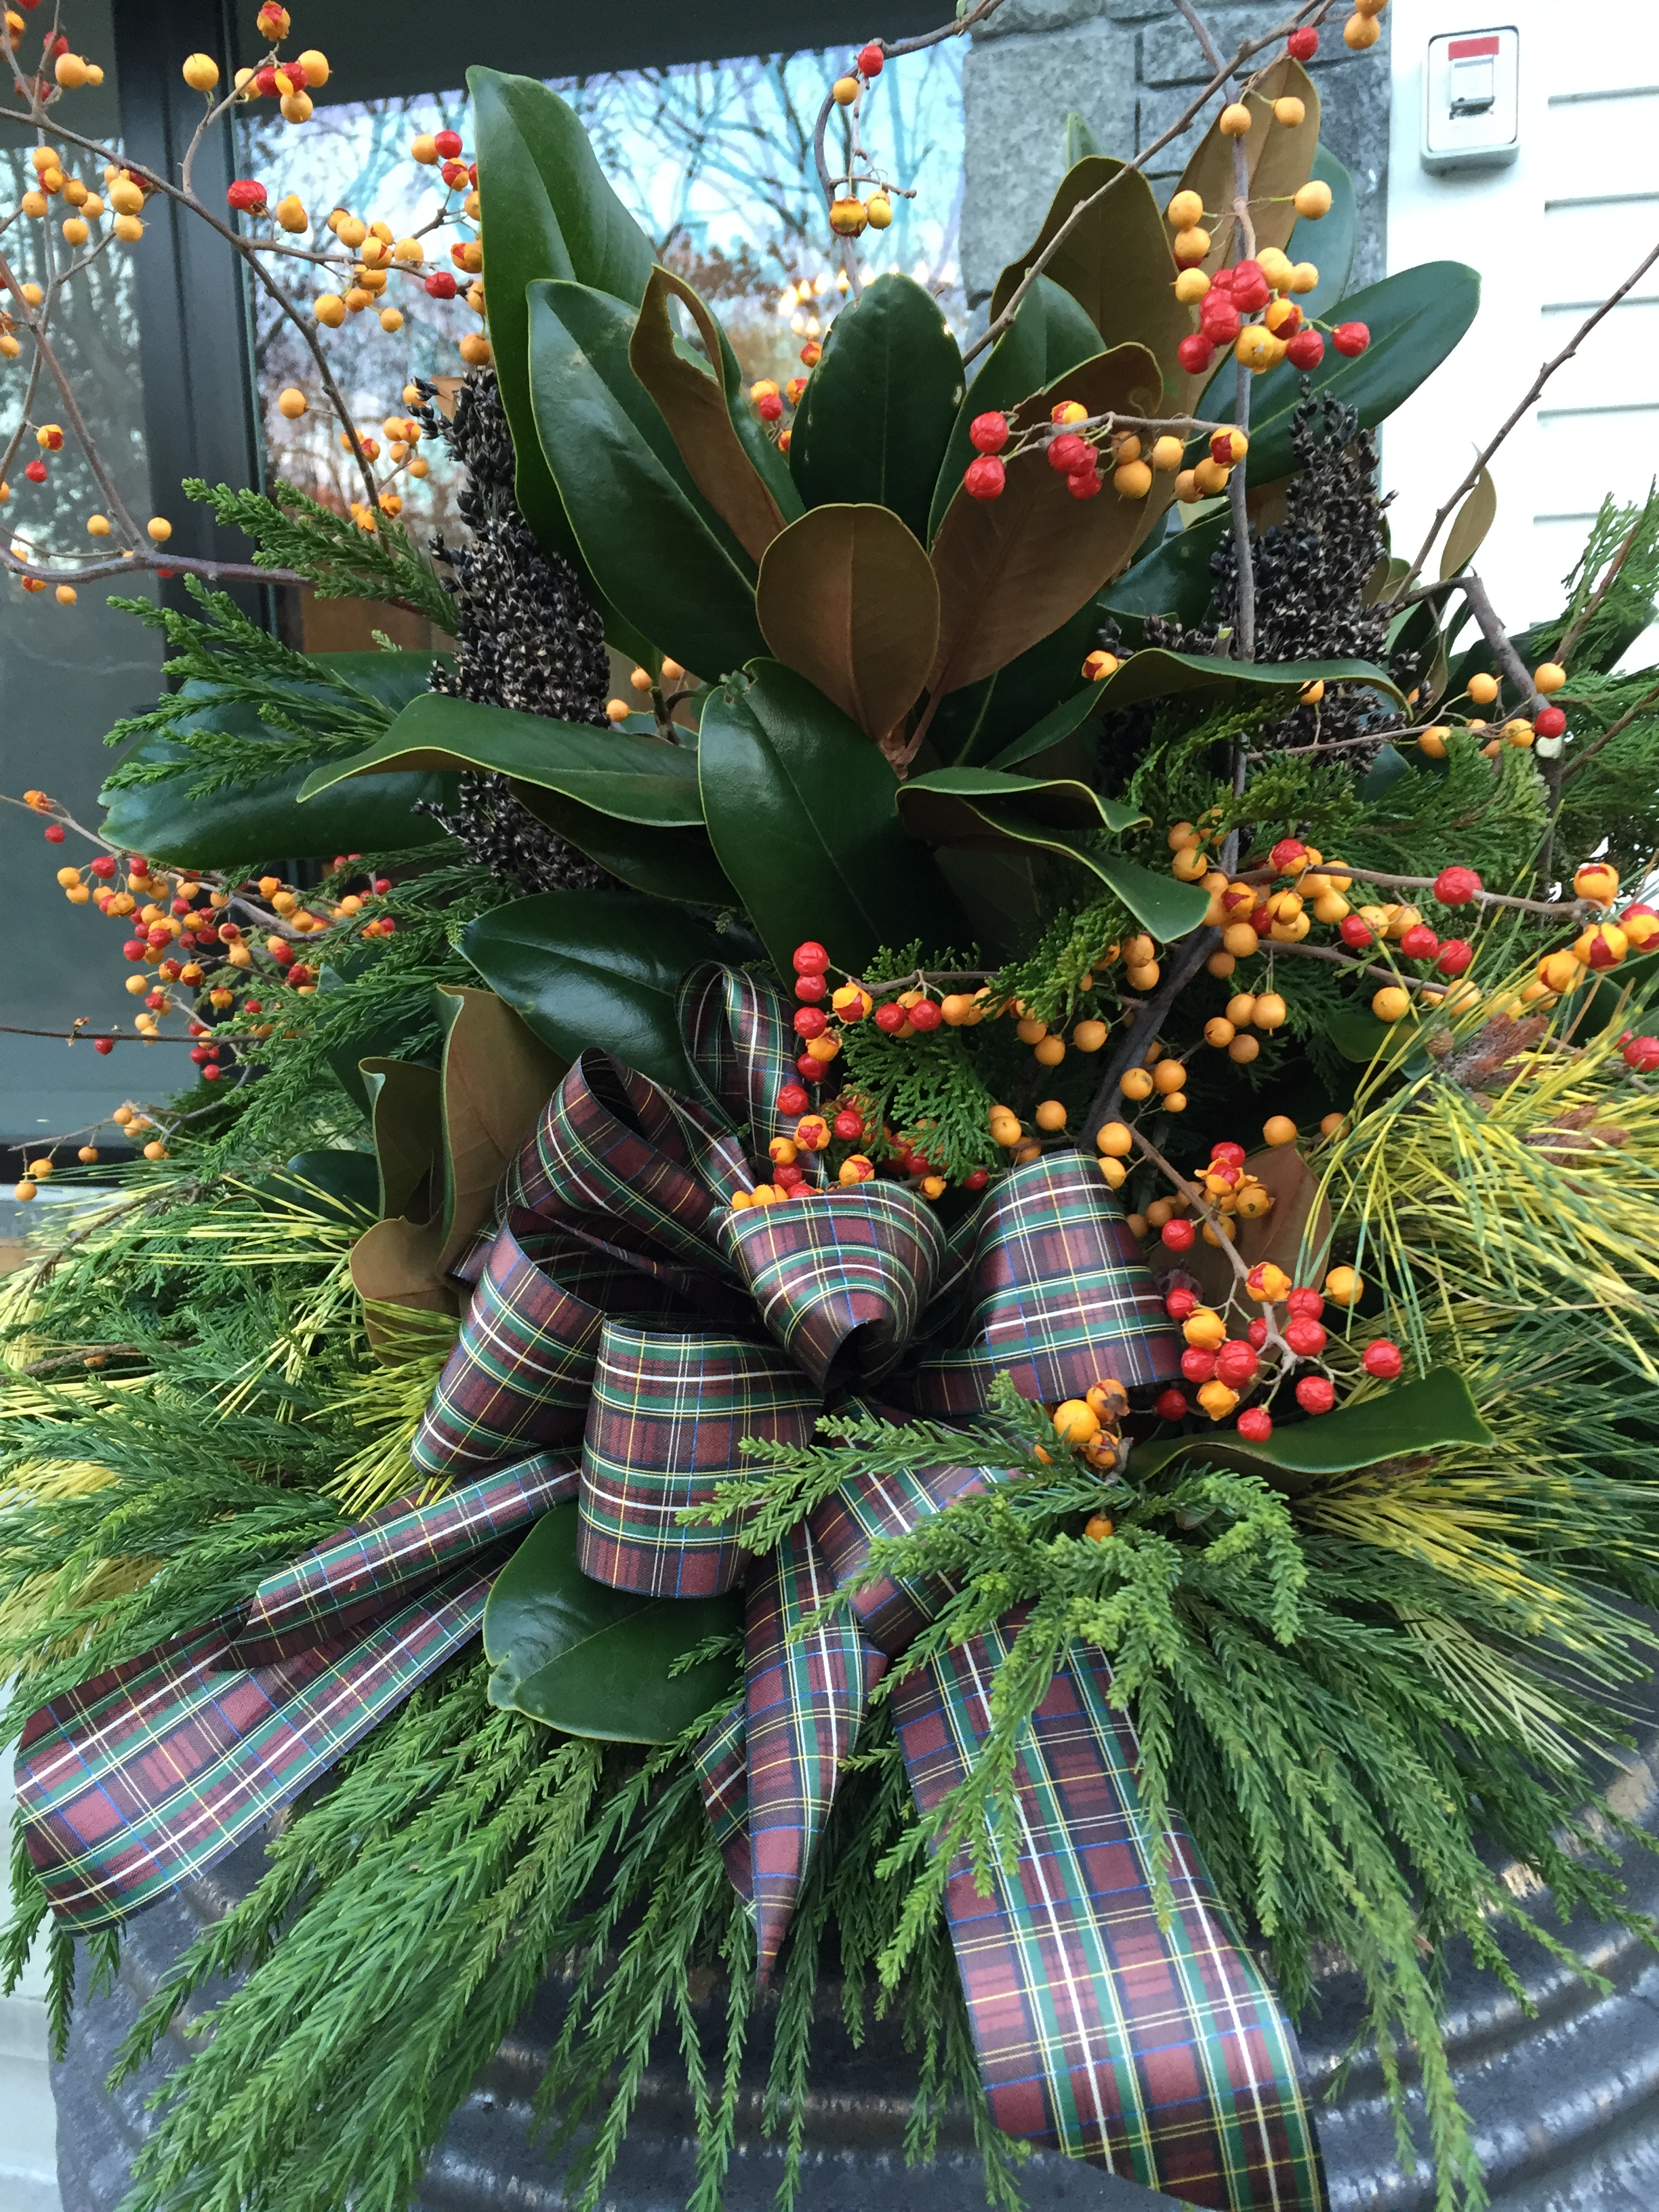 Urn with greenery, berries & tartan